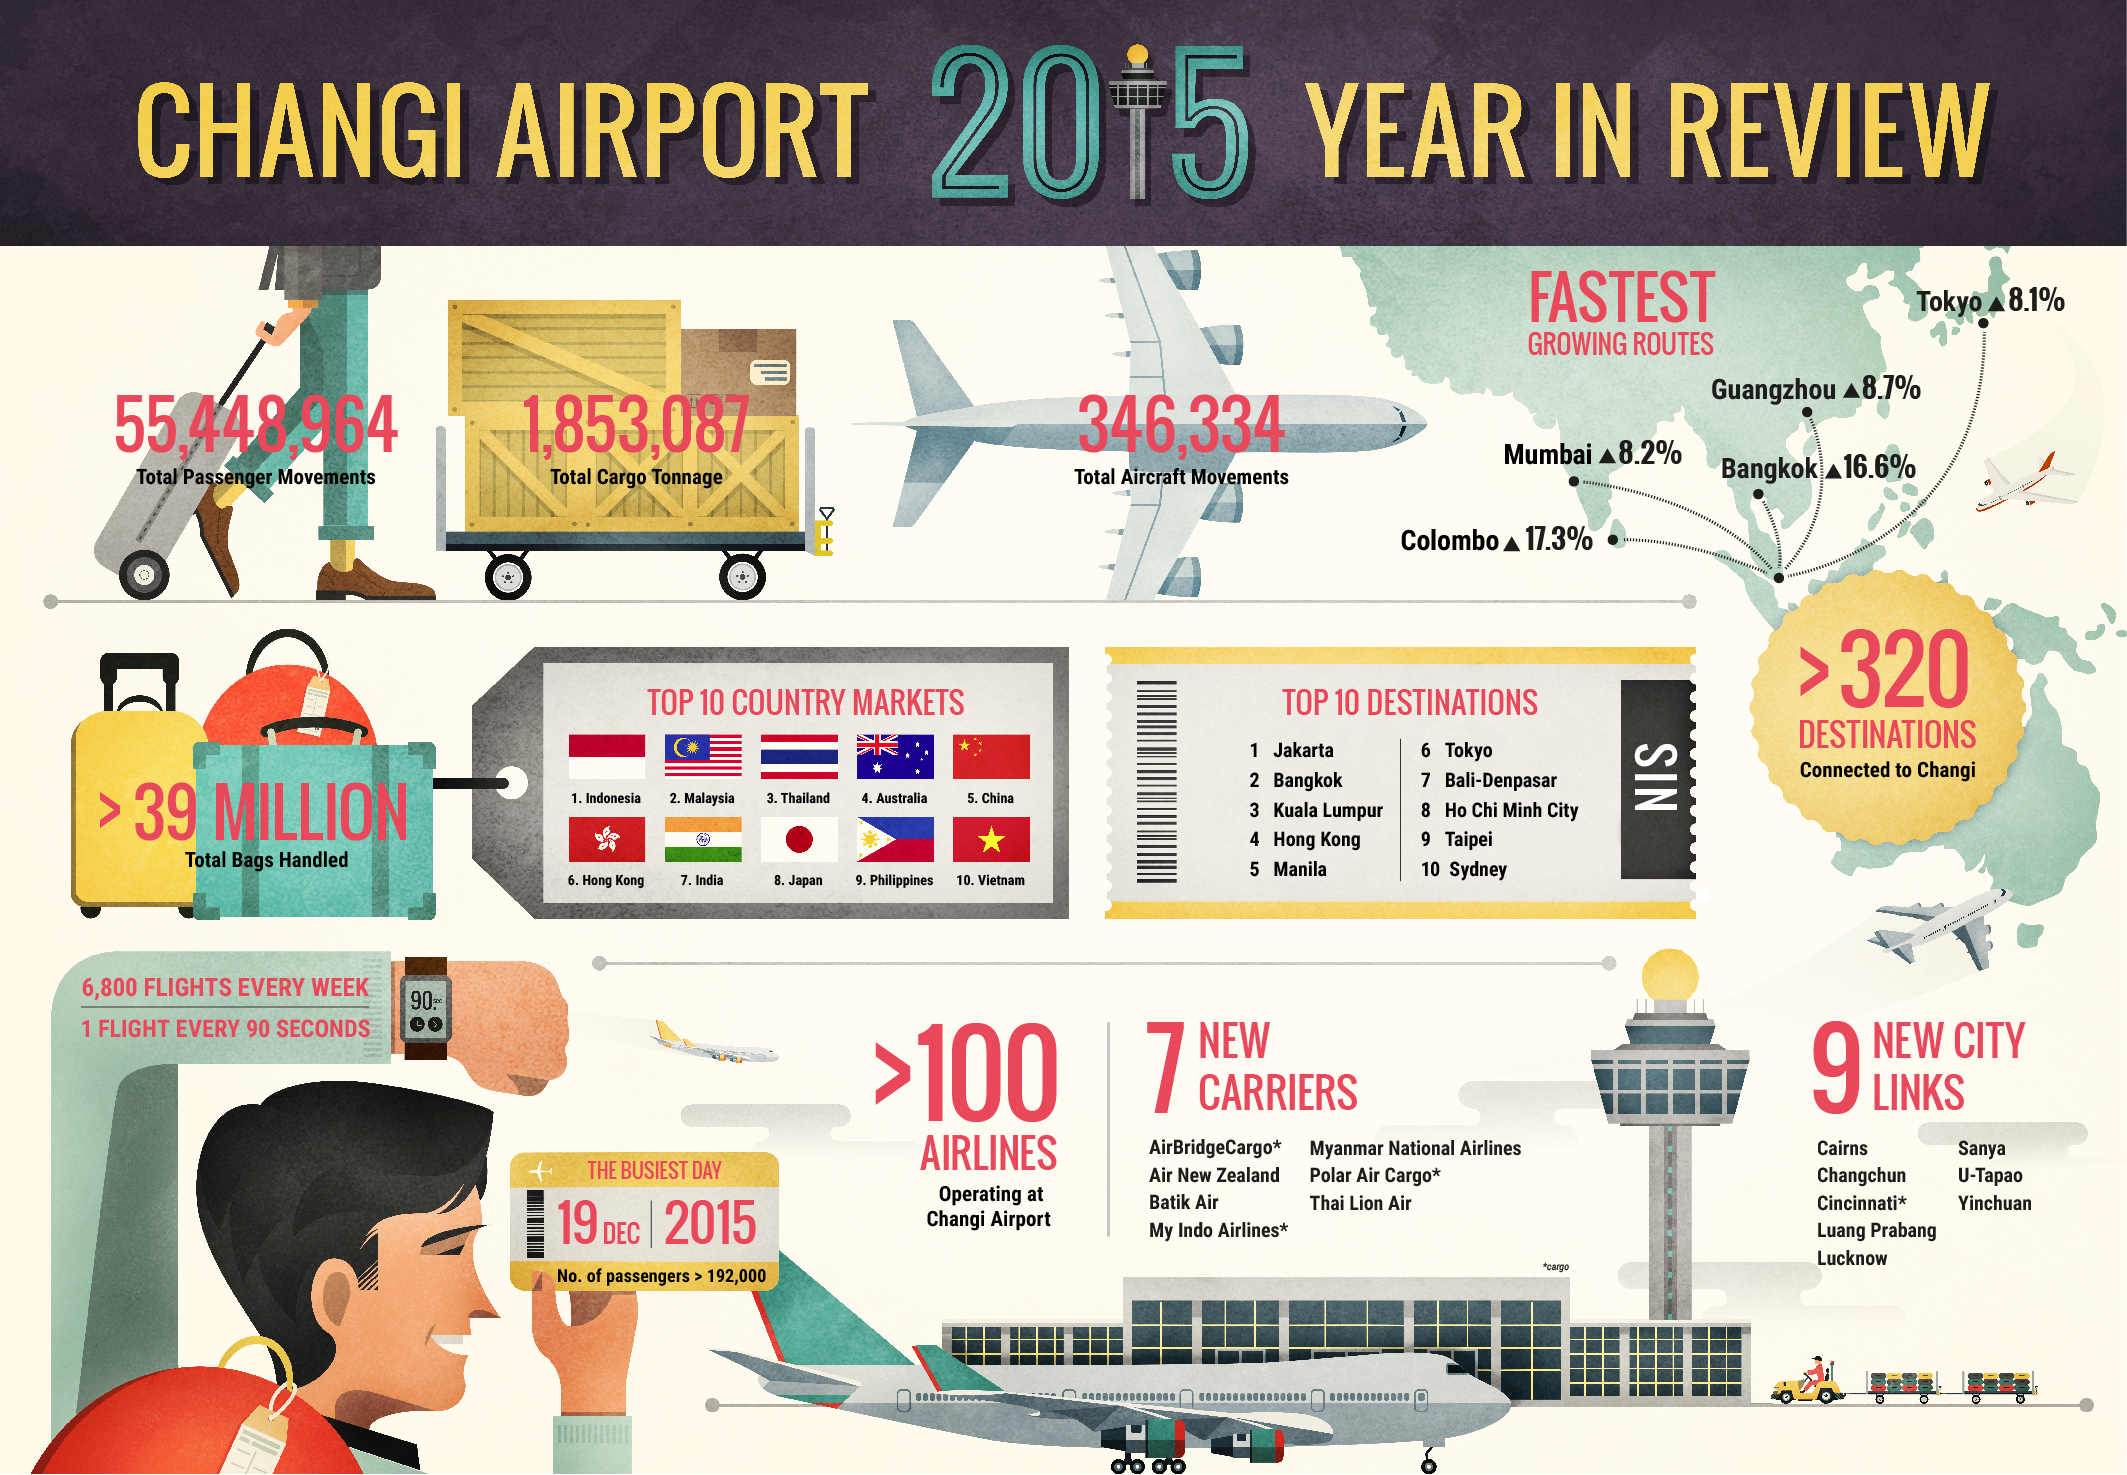 2015 Sees A Buoyant Performance By Changi Airport